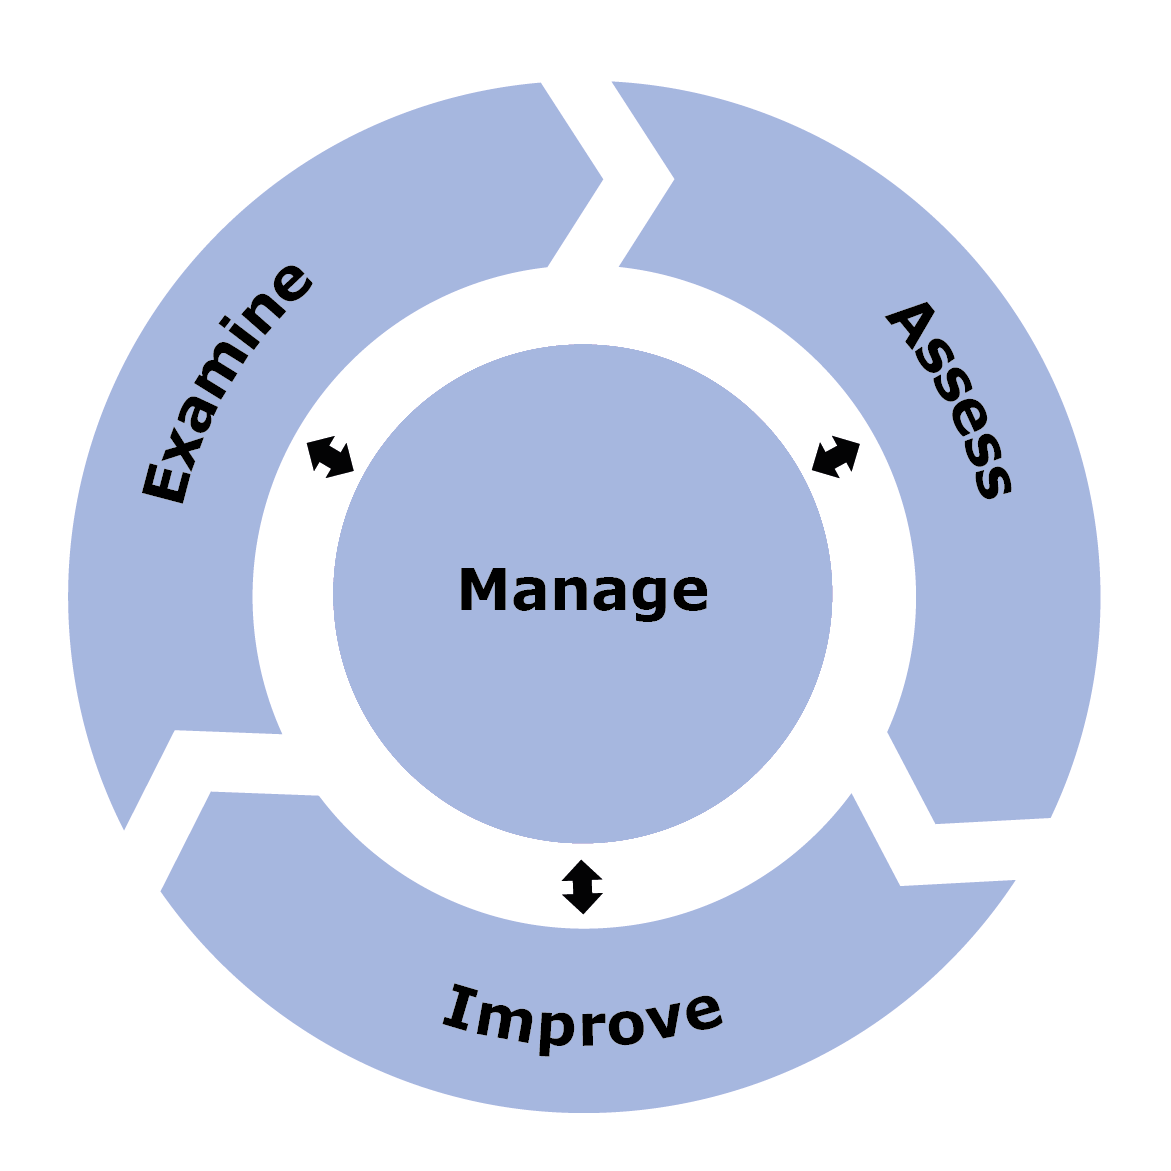 The SSA process consists of the Examine, Assess and Improve phases, guided and informed by Manage